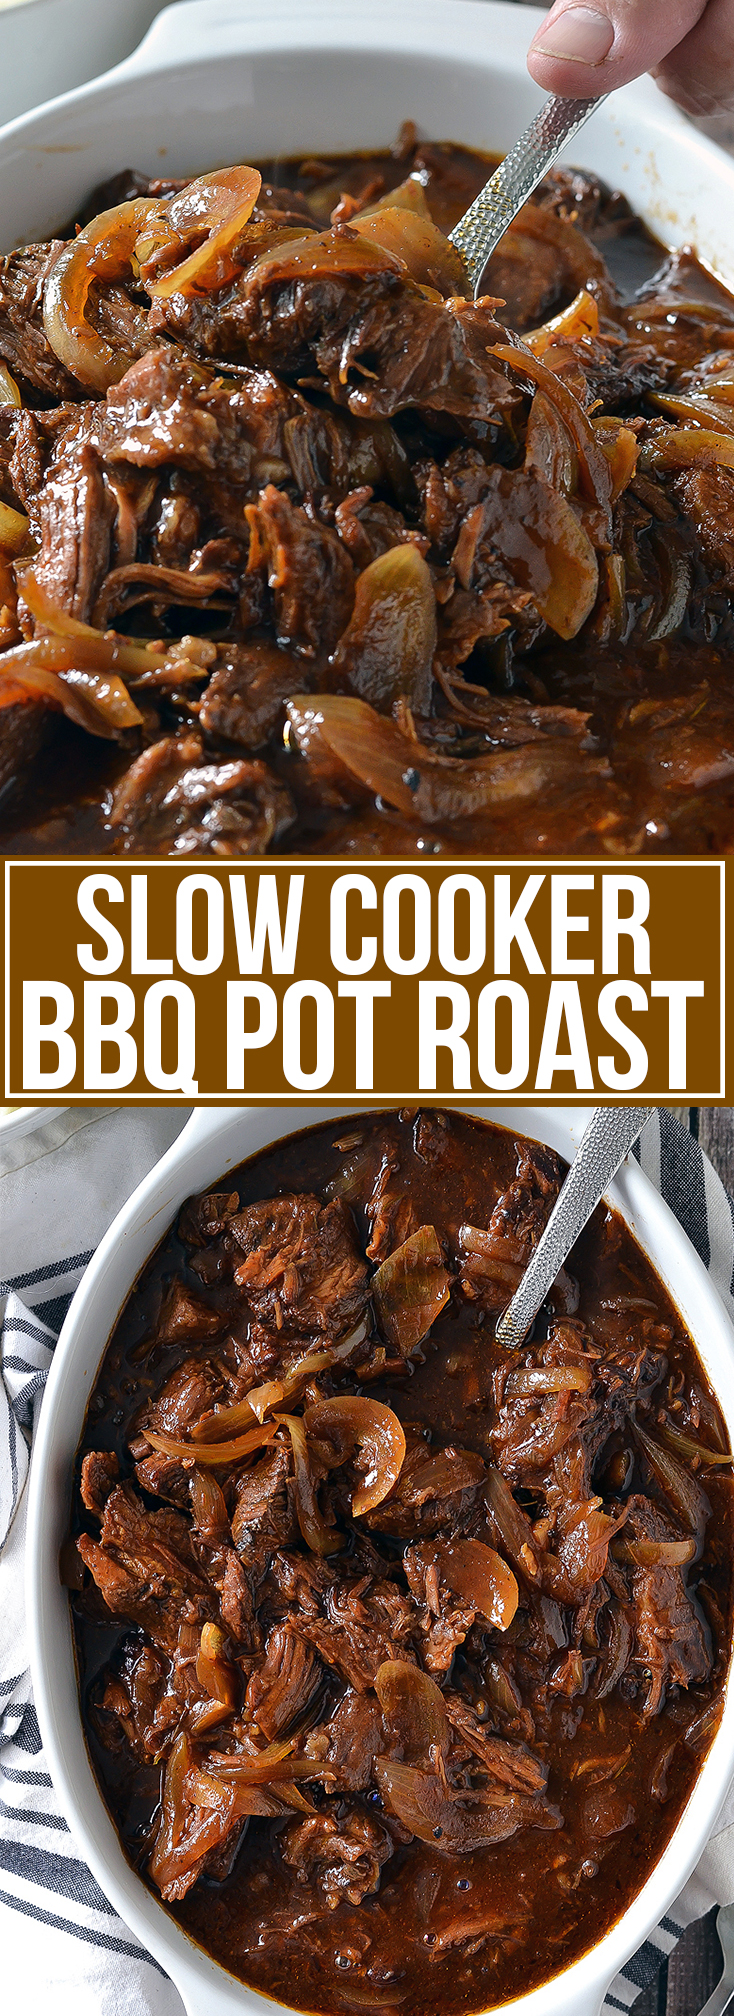 SLOW COOKER BBQ POT ROAST